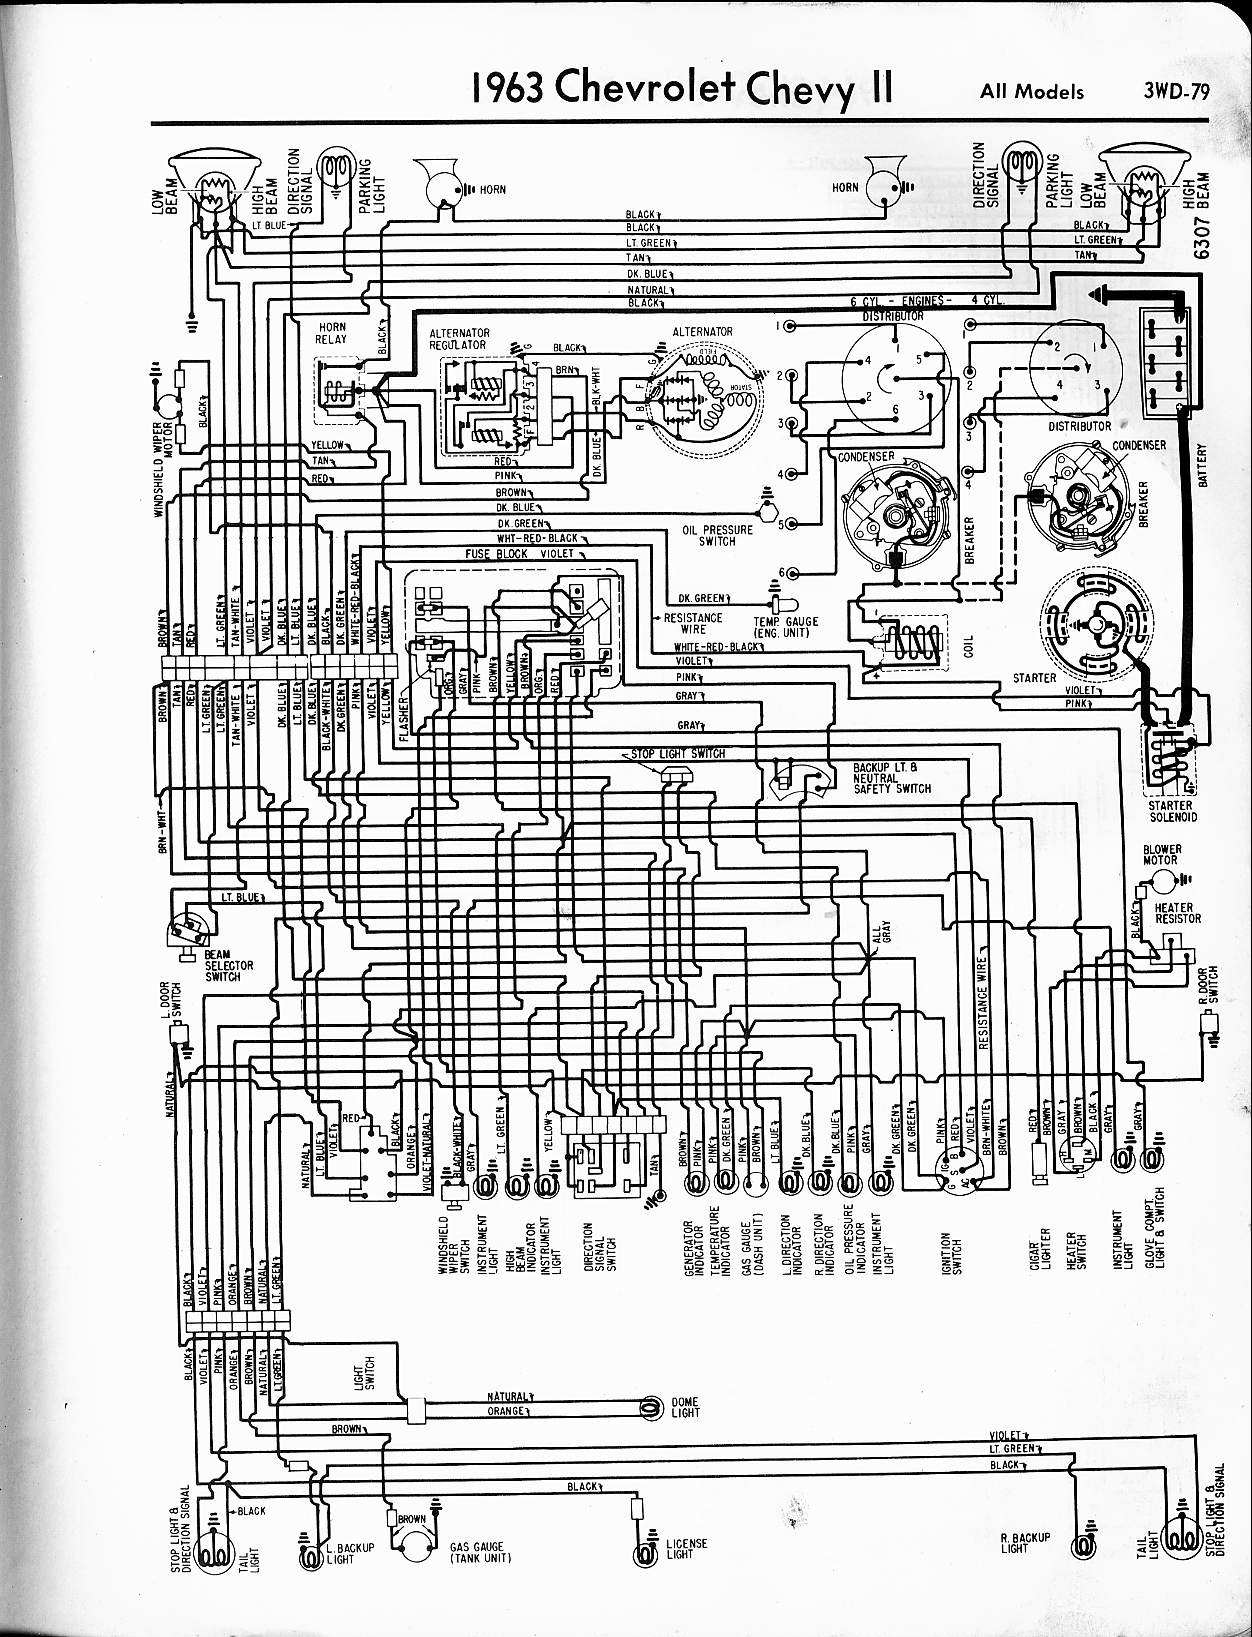 MWireChev63_3WD 079 1963 chevy impala wiring diagram 2002 chevy impala wiring diagram 1975 impala wiring diagram at virtualis.co